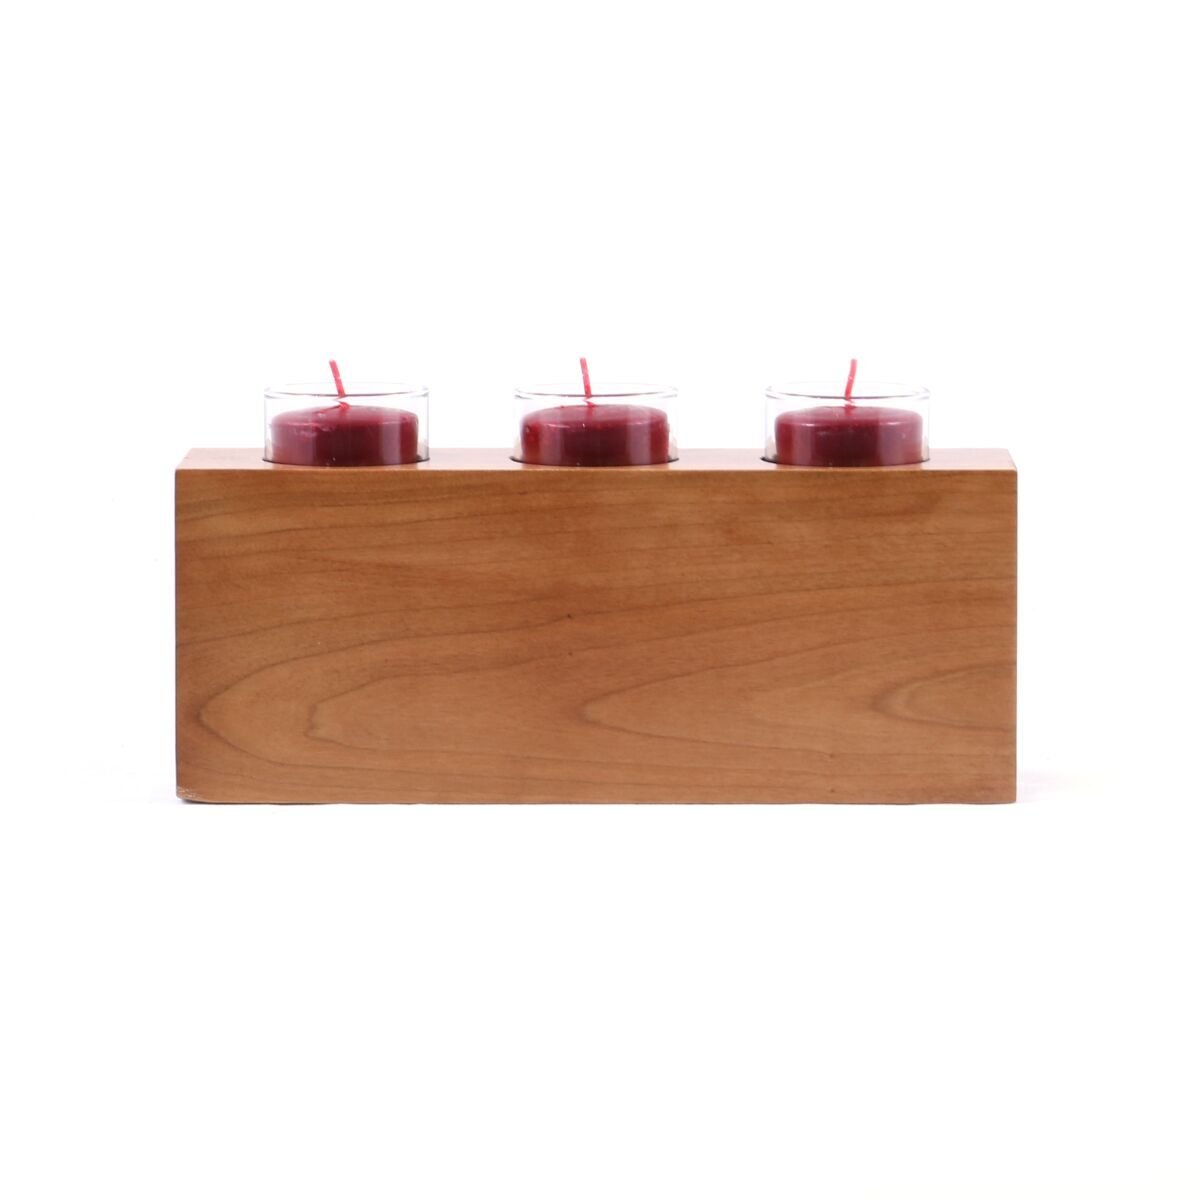 Personalized wedding anniversary candle holder for him her engraved cherry wood engagement ideas for boyfriend or girlfriend One FAITH HOPE LOVE 10'' L x 4'' H by LifeSong Milestones (Faith Hope Love) by LifeSong Milestones (Image #2)